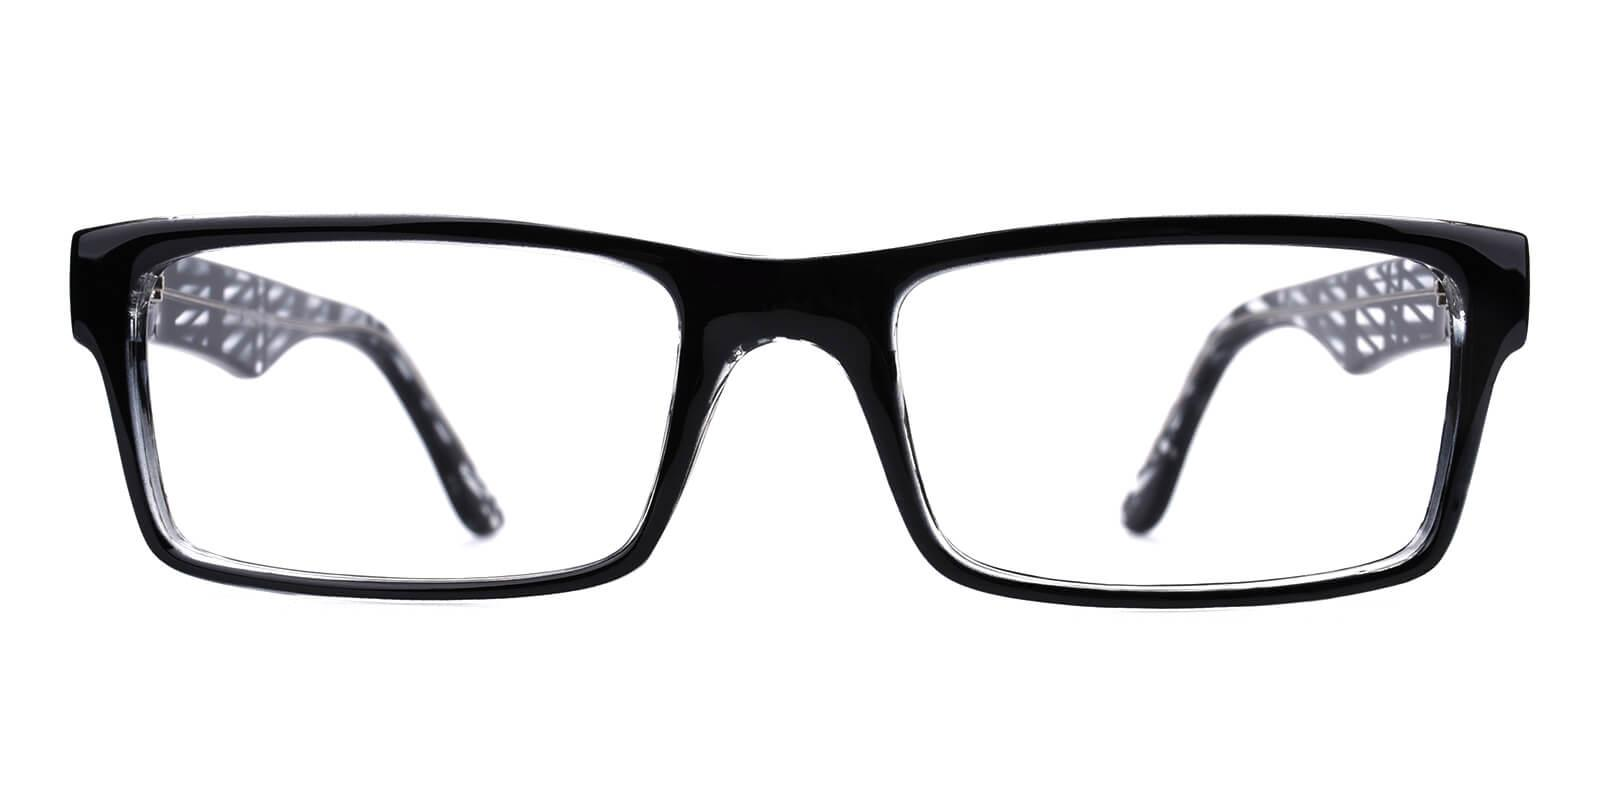 Moosern-Black-Rectangle-Acetate-Eyeglasses-additional2